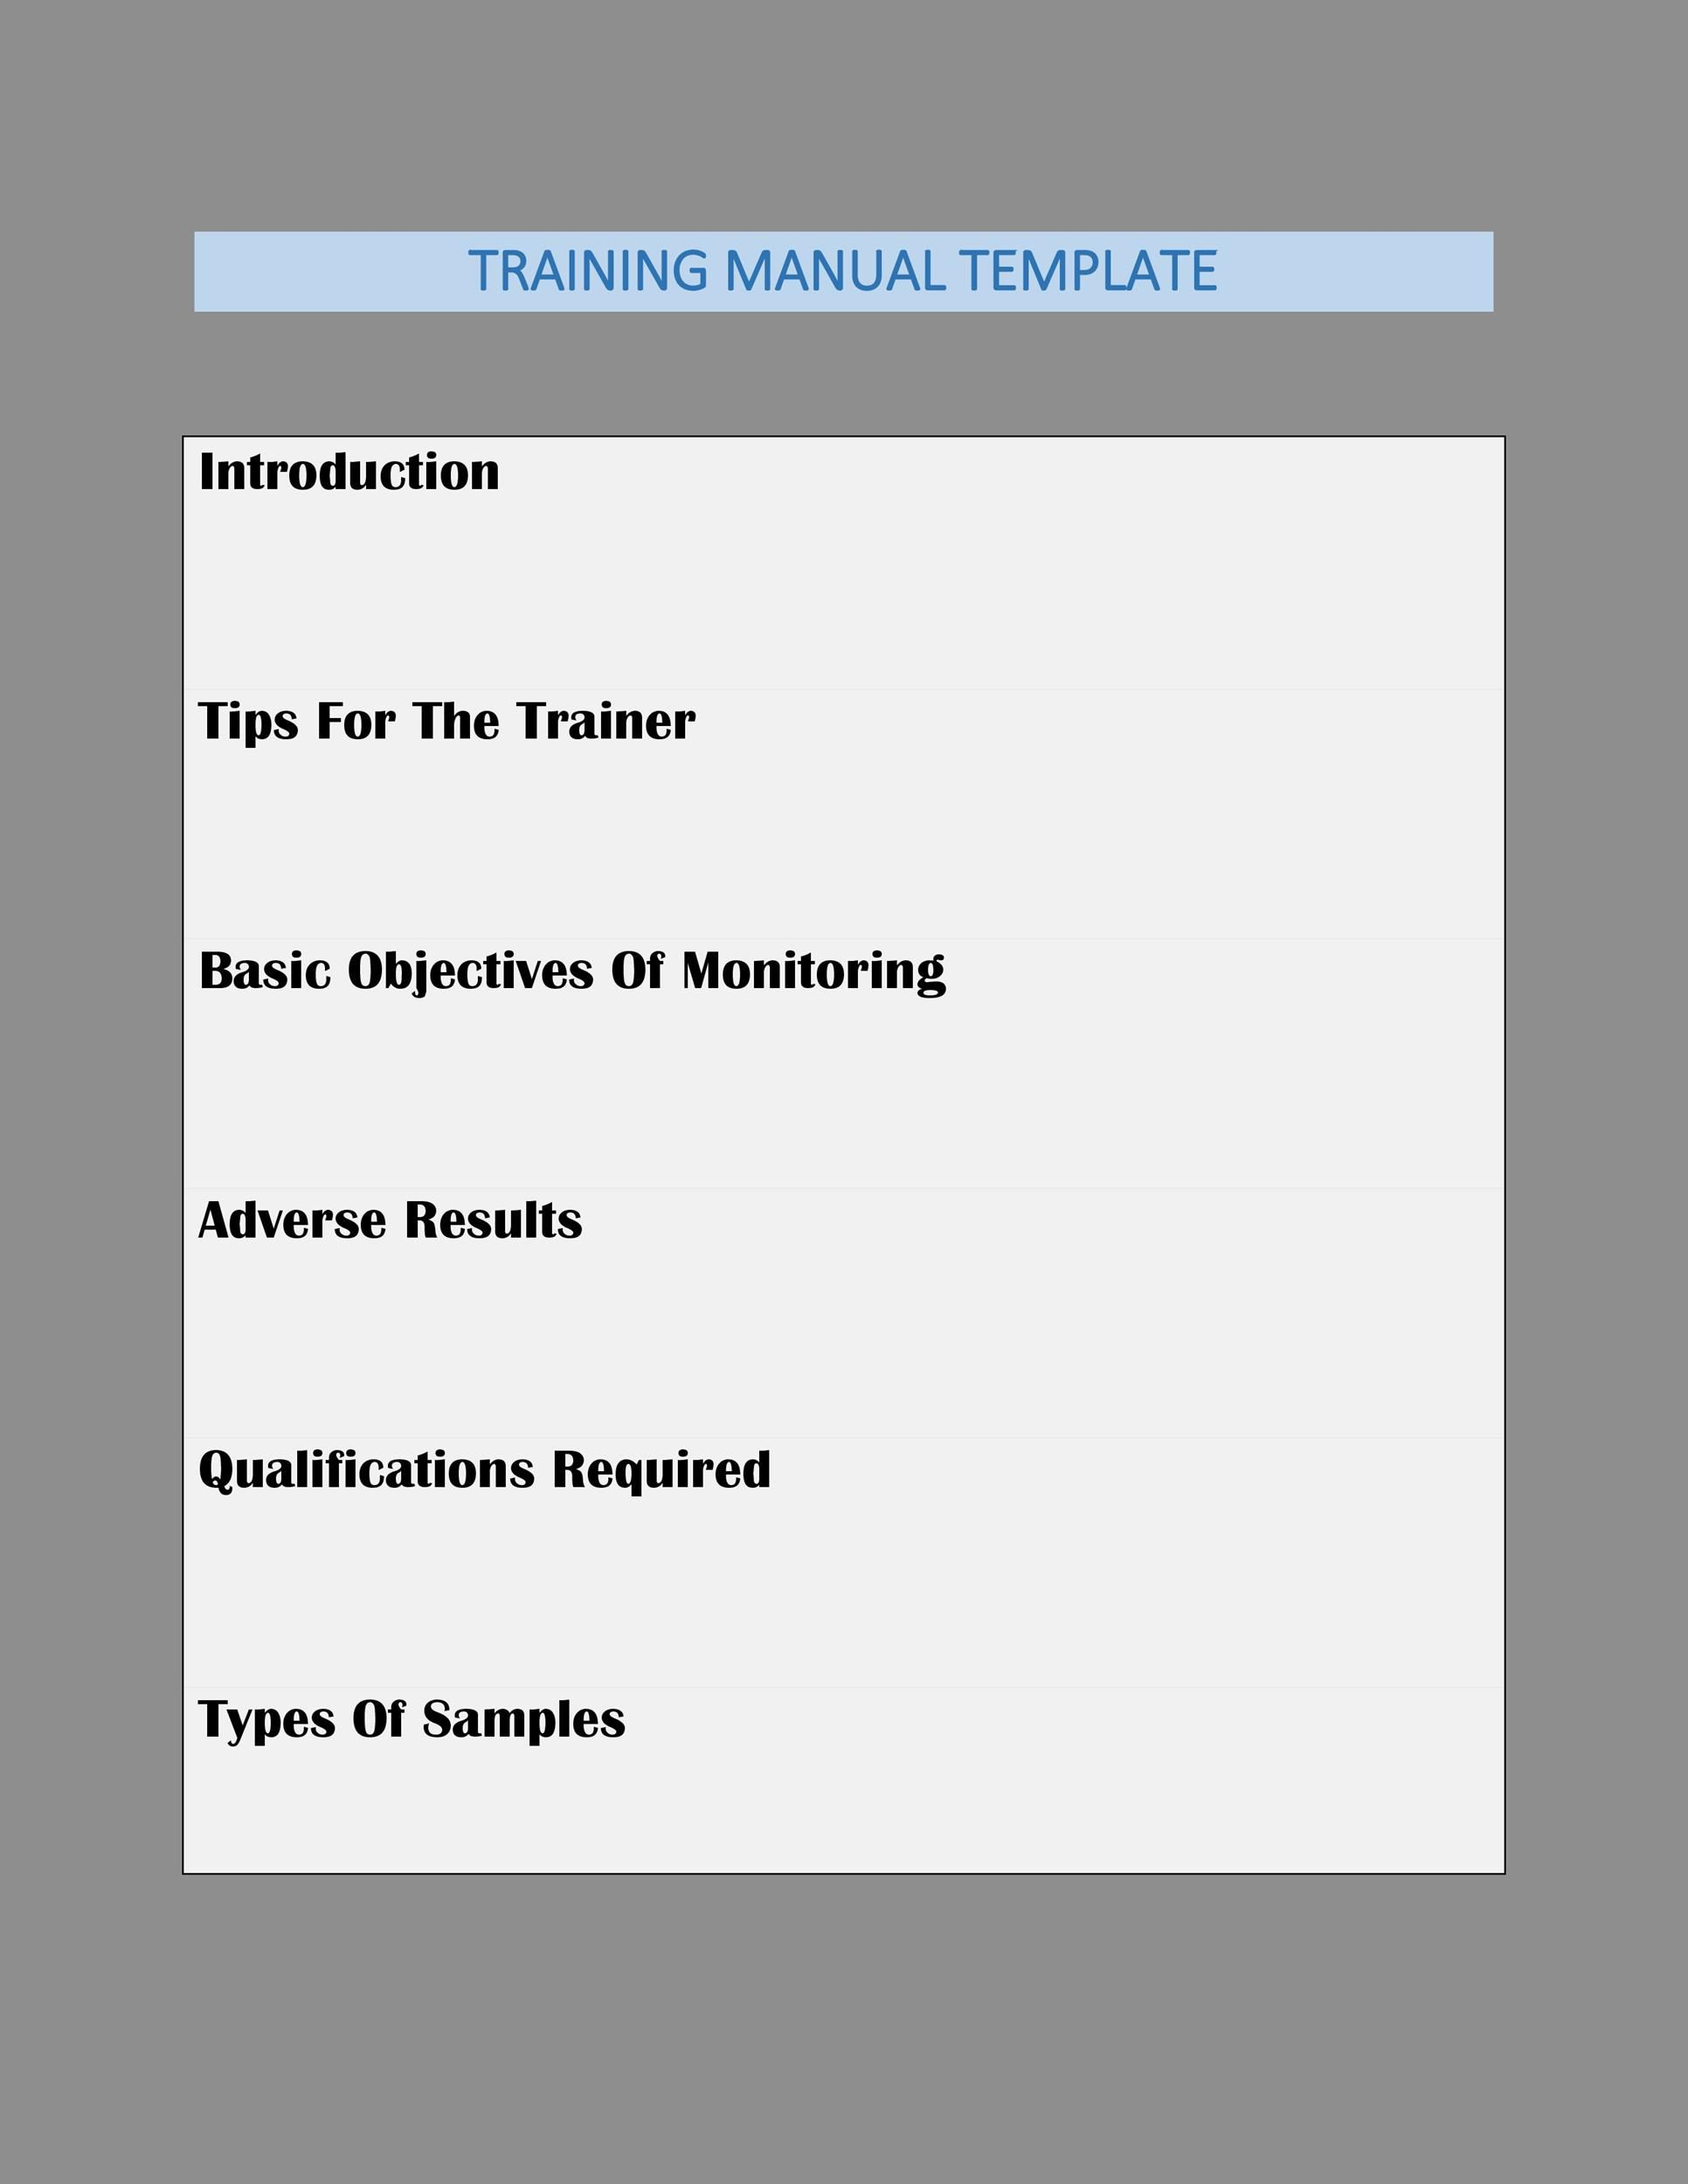 007 Surprising Employee Training Manual Template High Def  New Hire ExampleFull